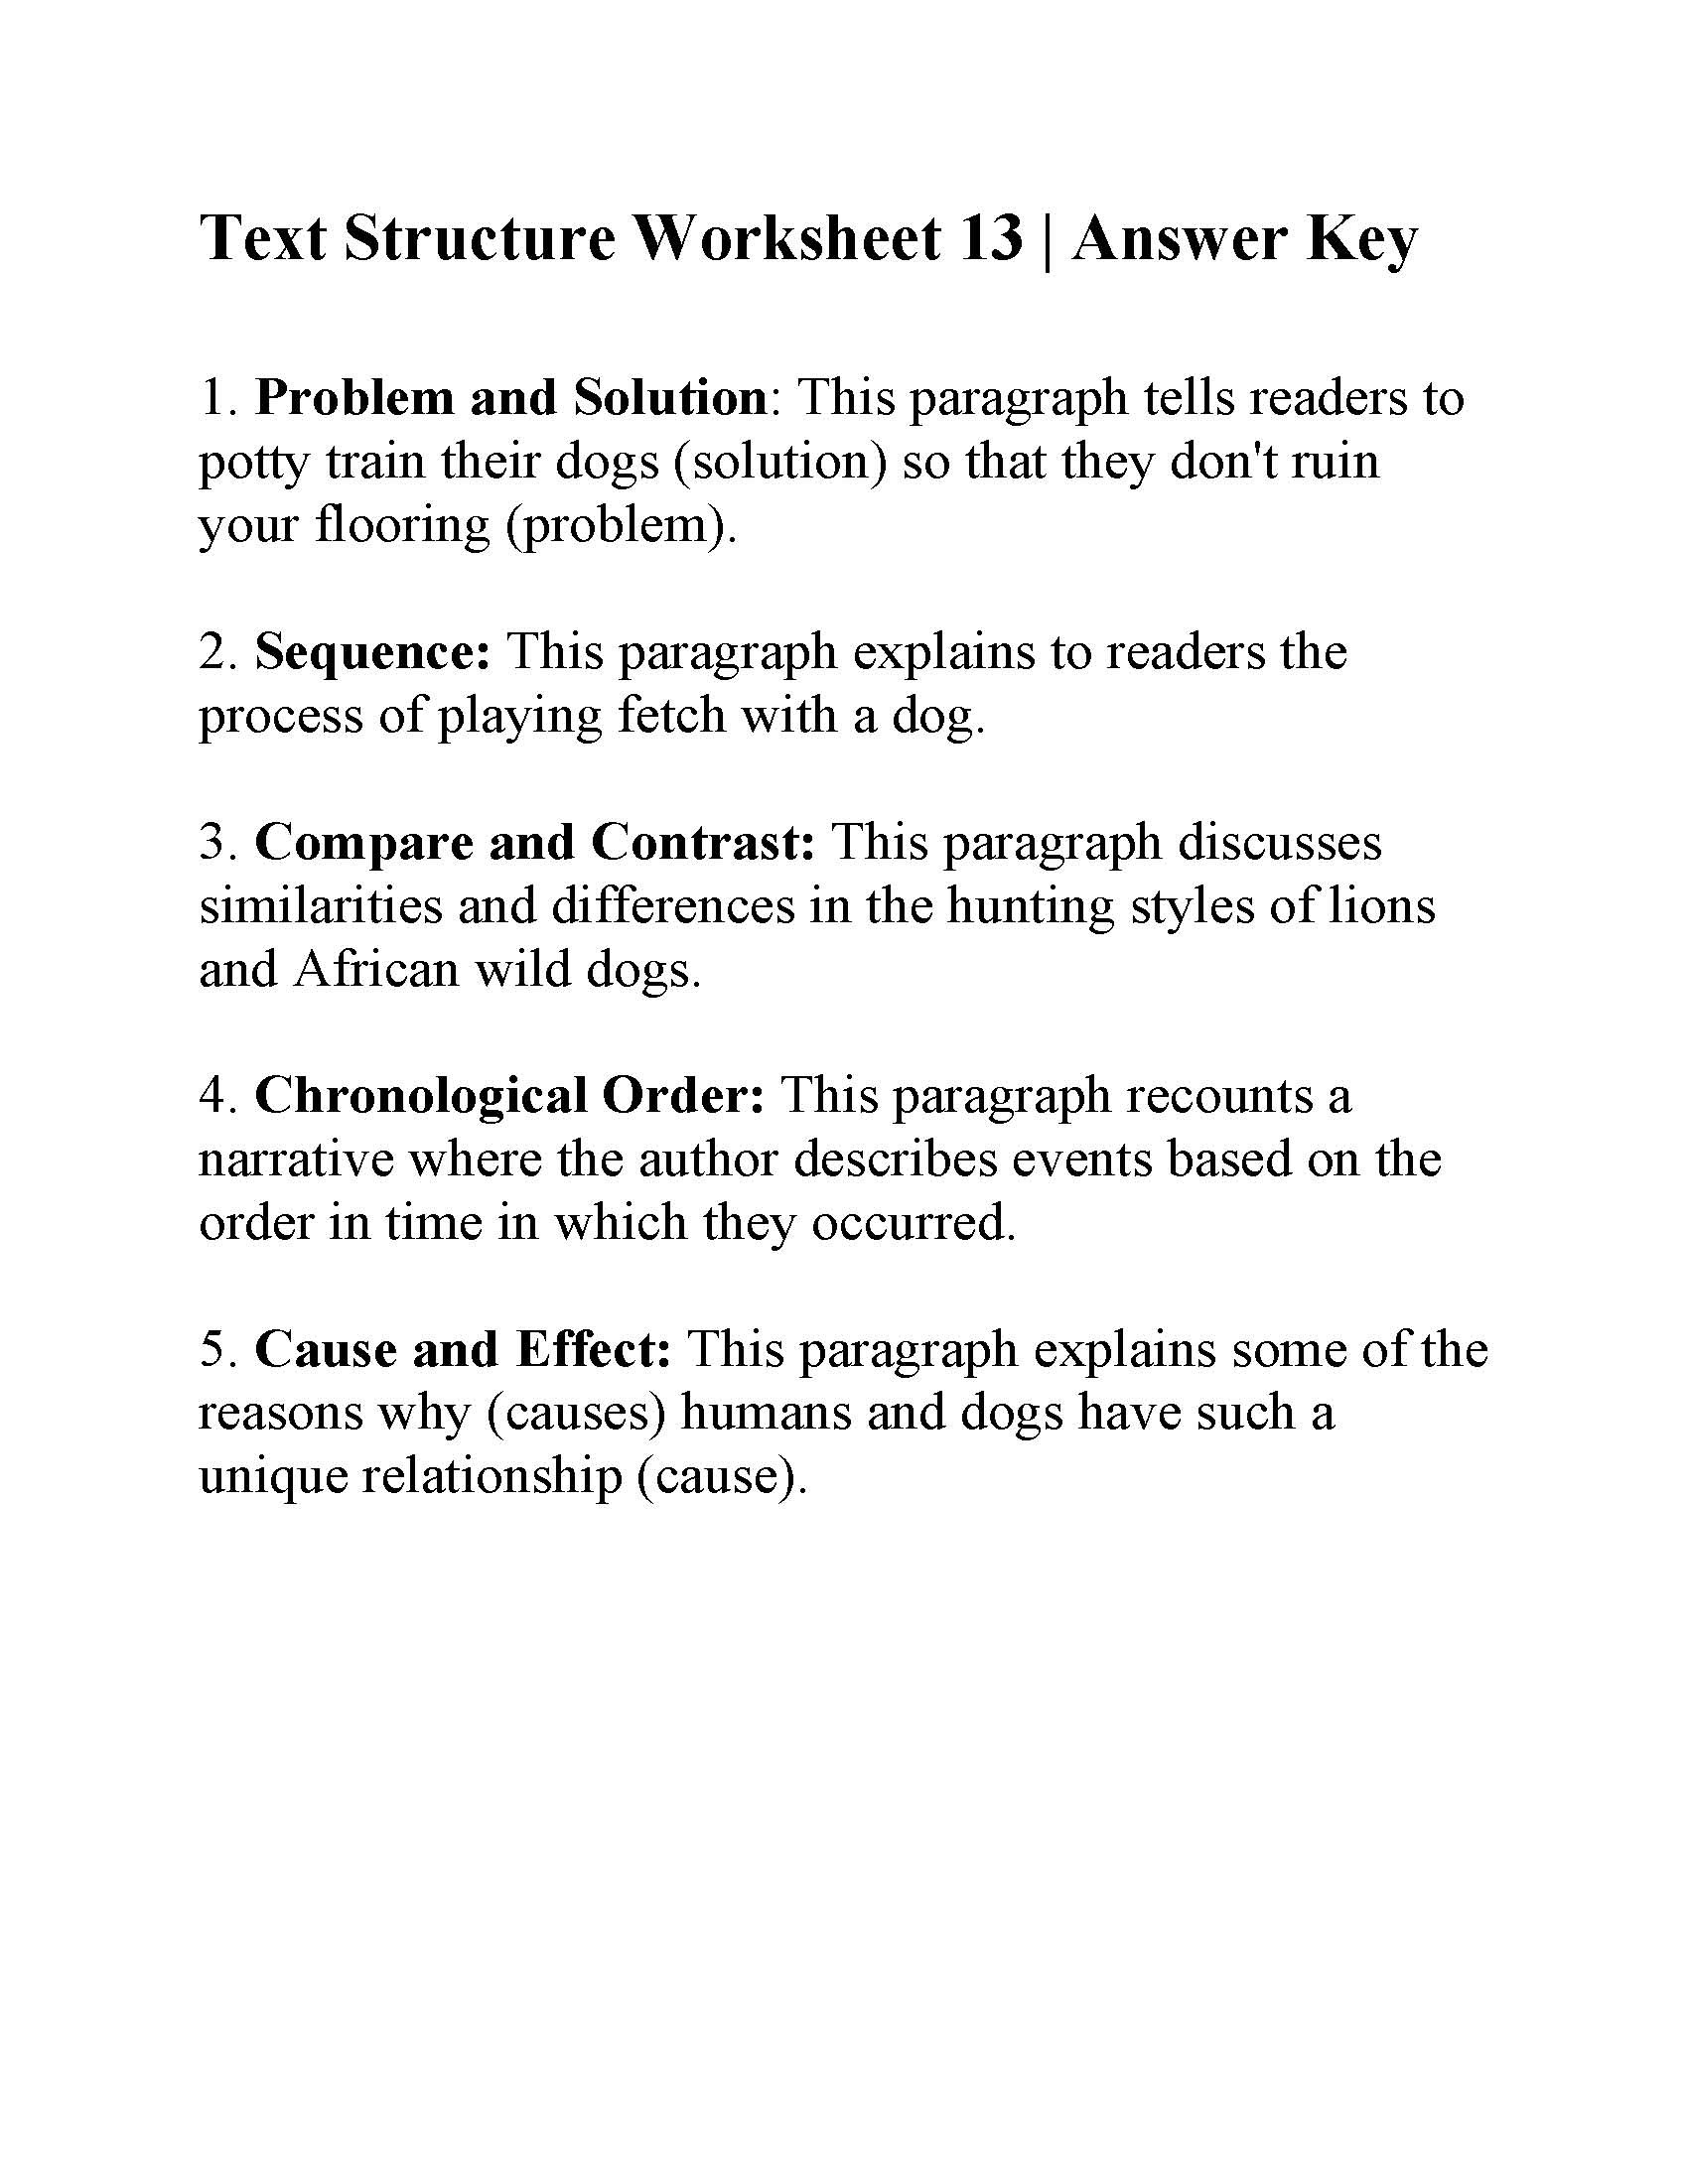 Text Structure Worksheet Pdf Text Structure Worksheet 13